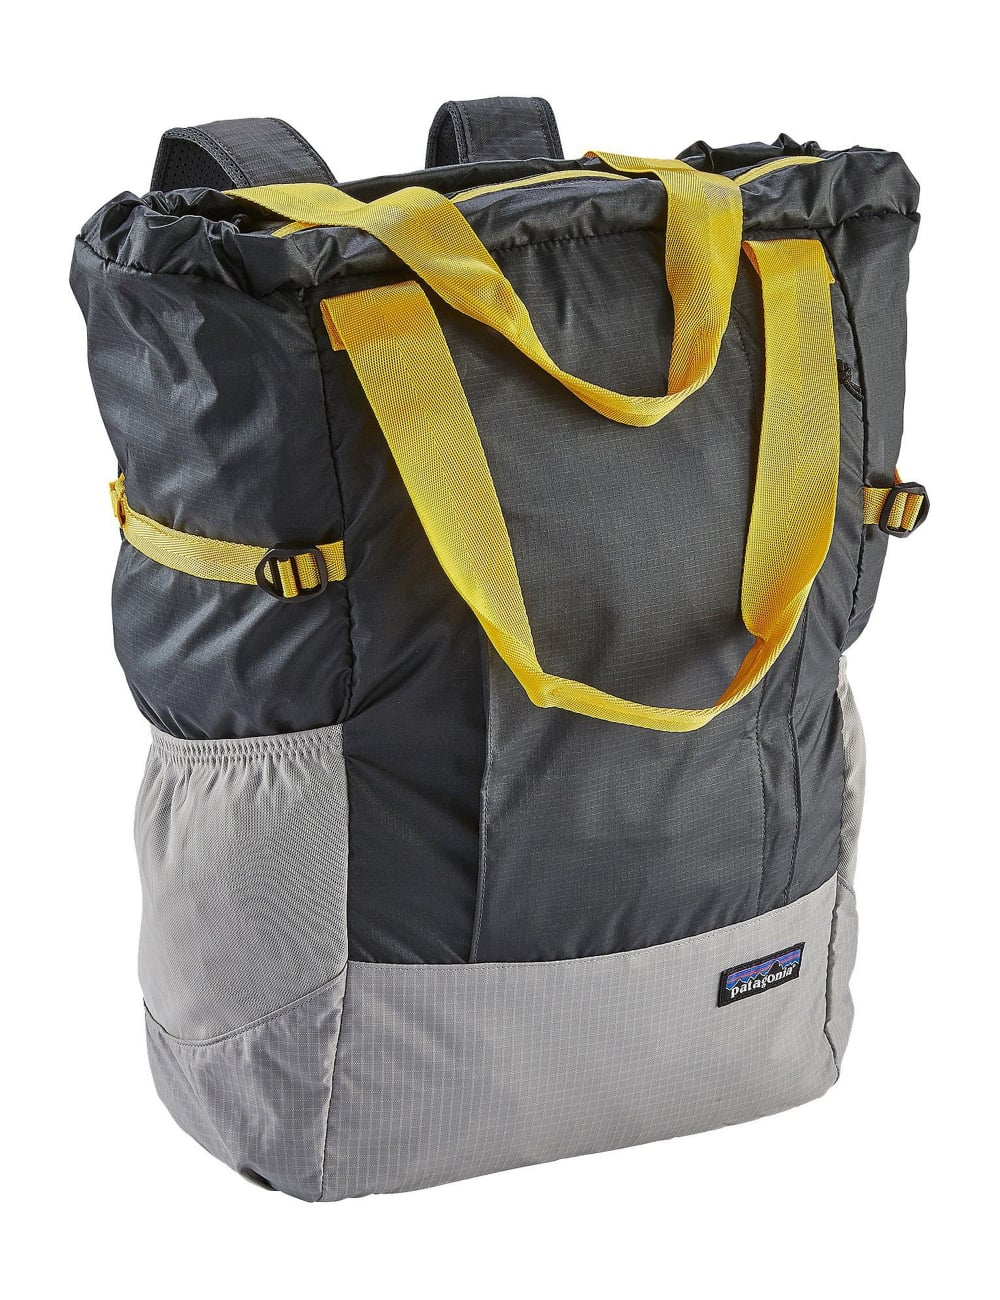 Patagonia Lightweight Travel Tote Bag - Forge Grey Chromatic Yellow ... 7524c9bdbdd5d